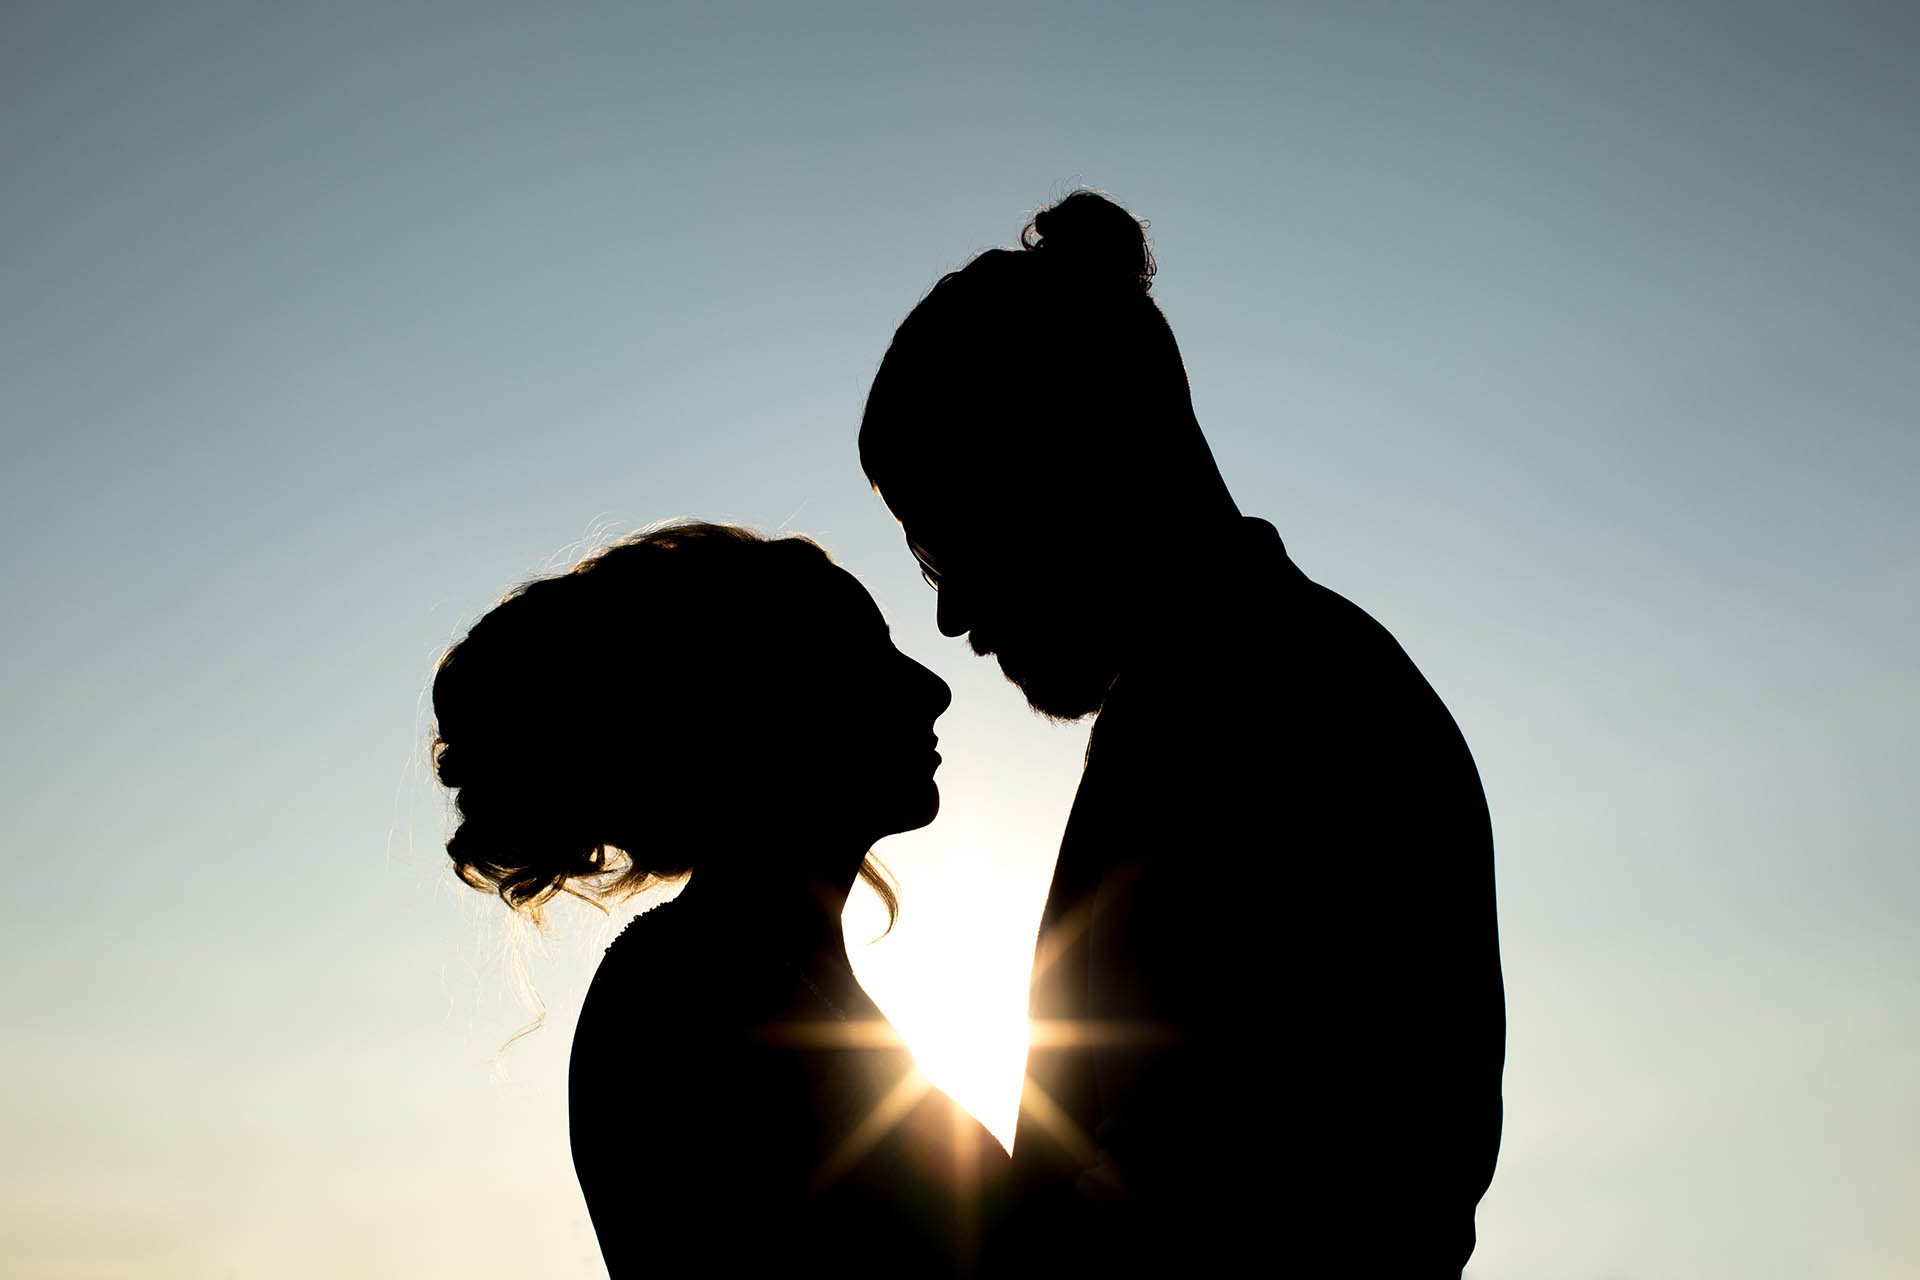 Silhouette of bride and groom photograph by Eyeshine Photography